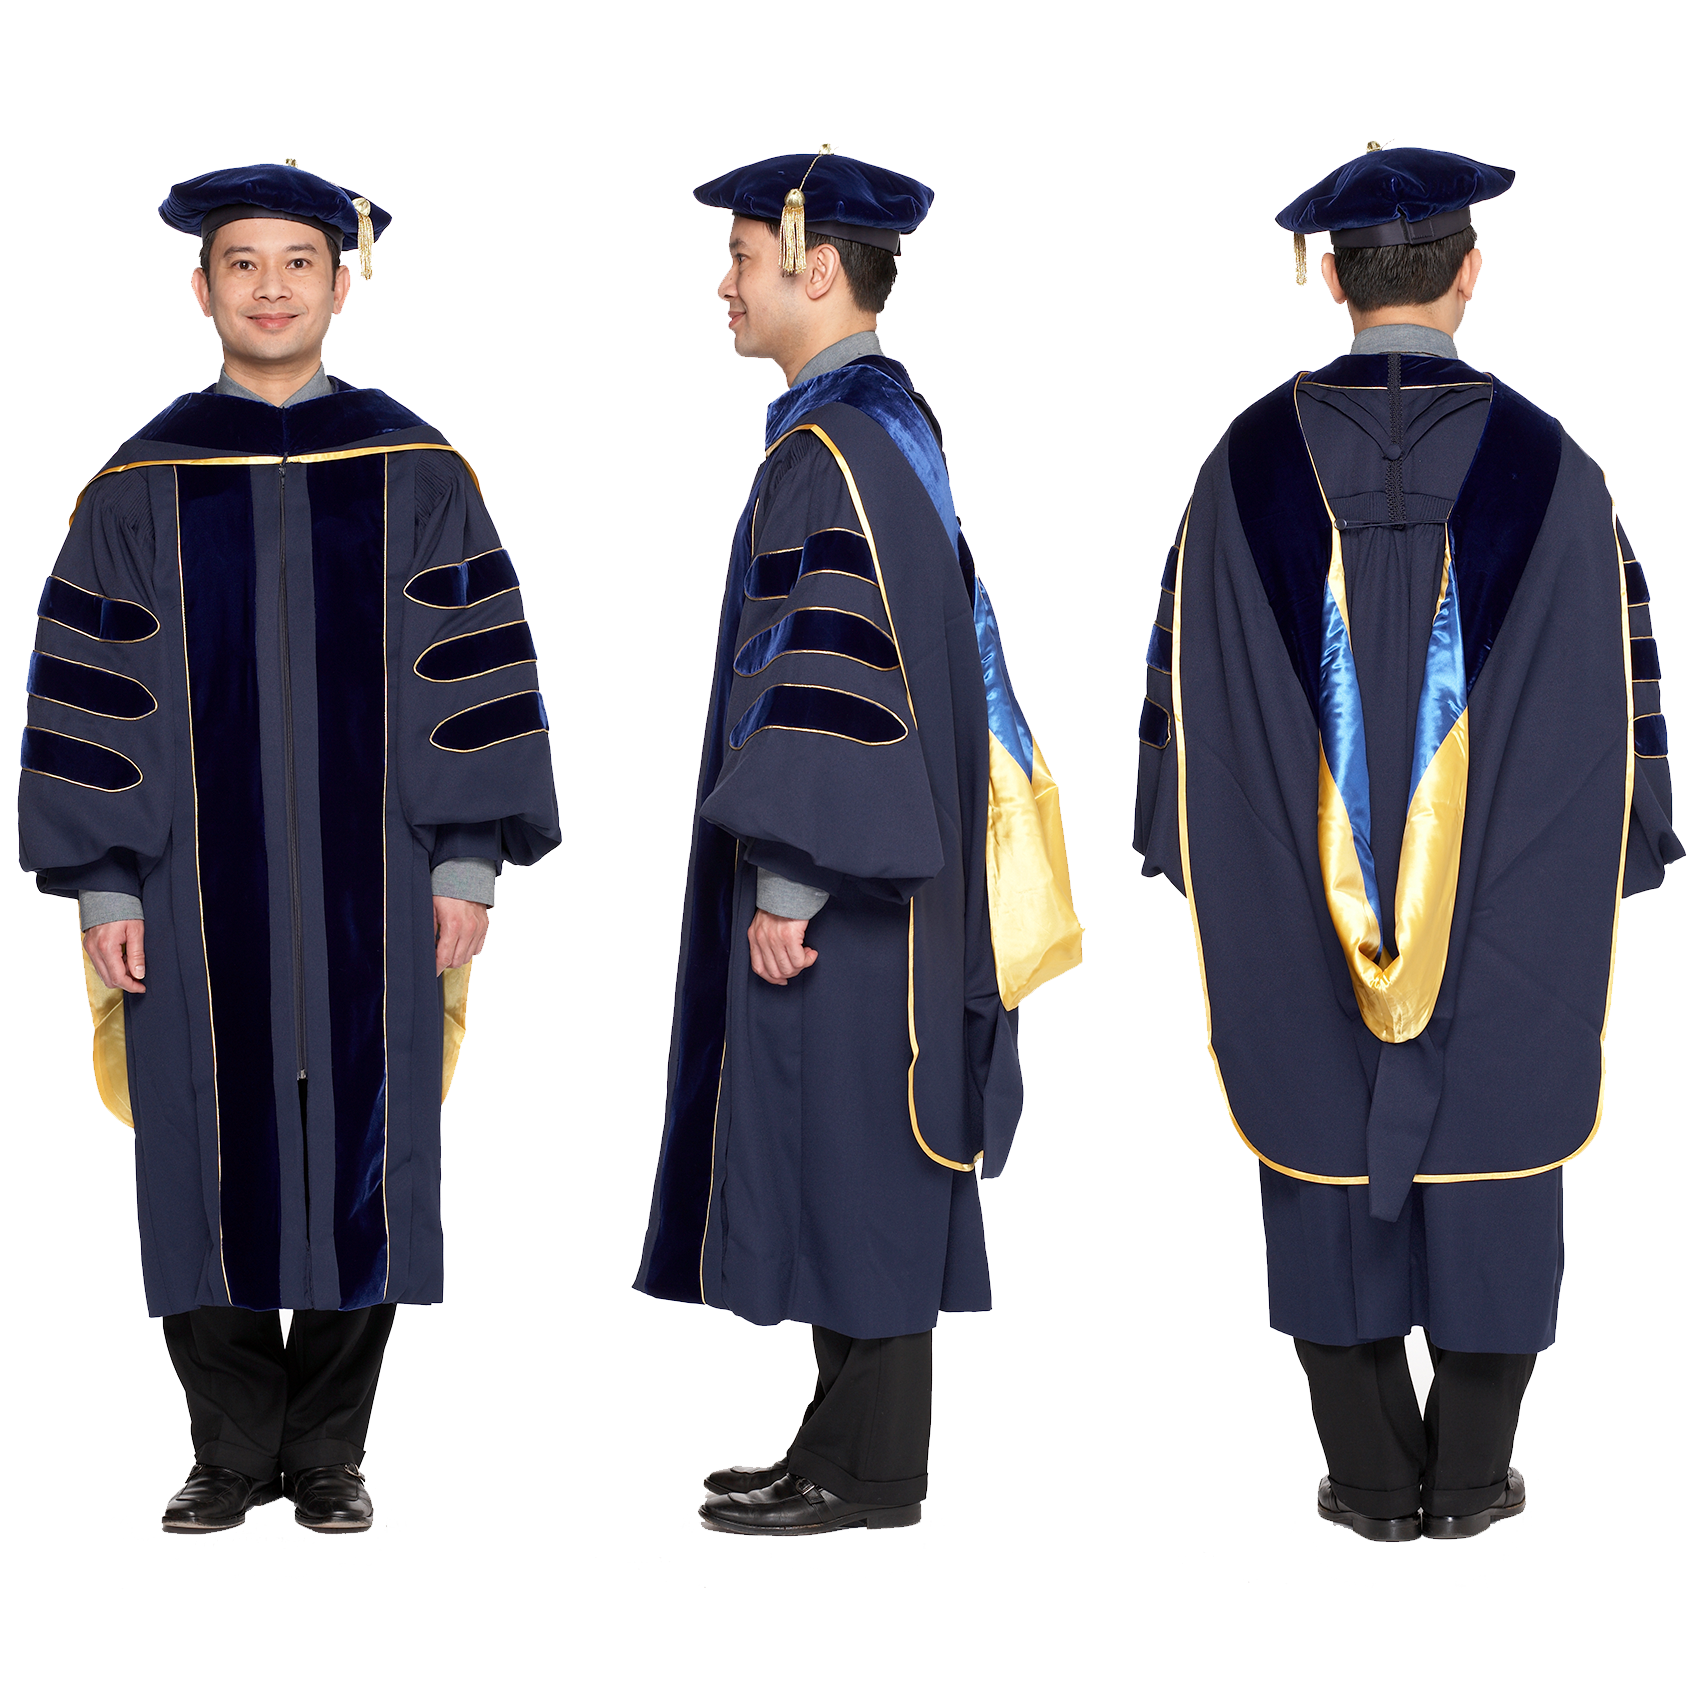 Complete Doctoral Regalia for University of California | Pinterest ...